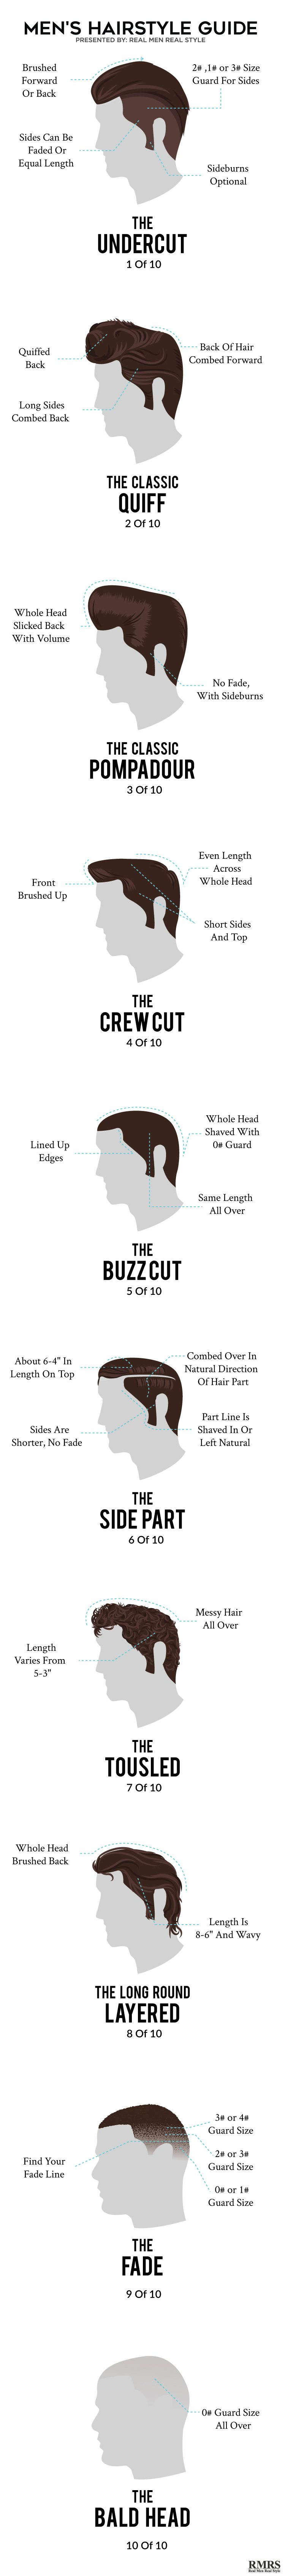 Men\'s Hairstyle Guide Infographic